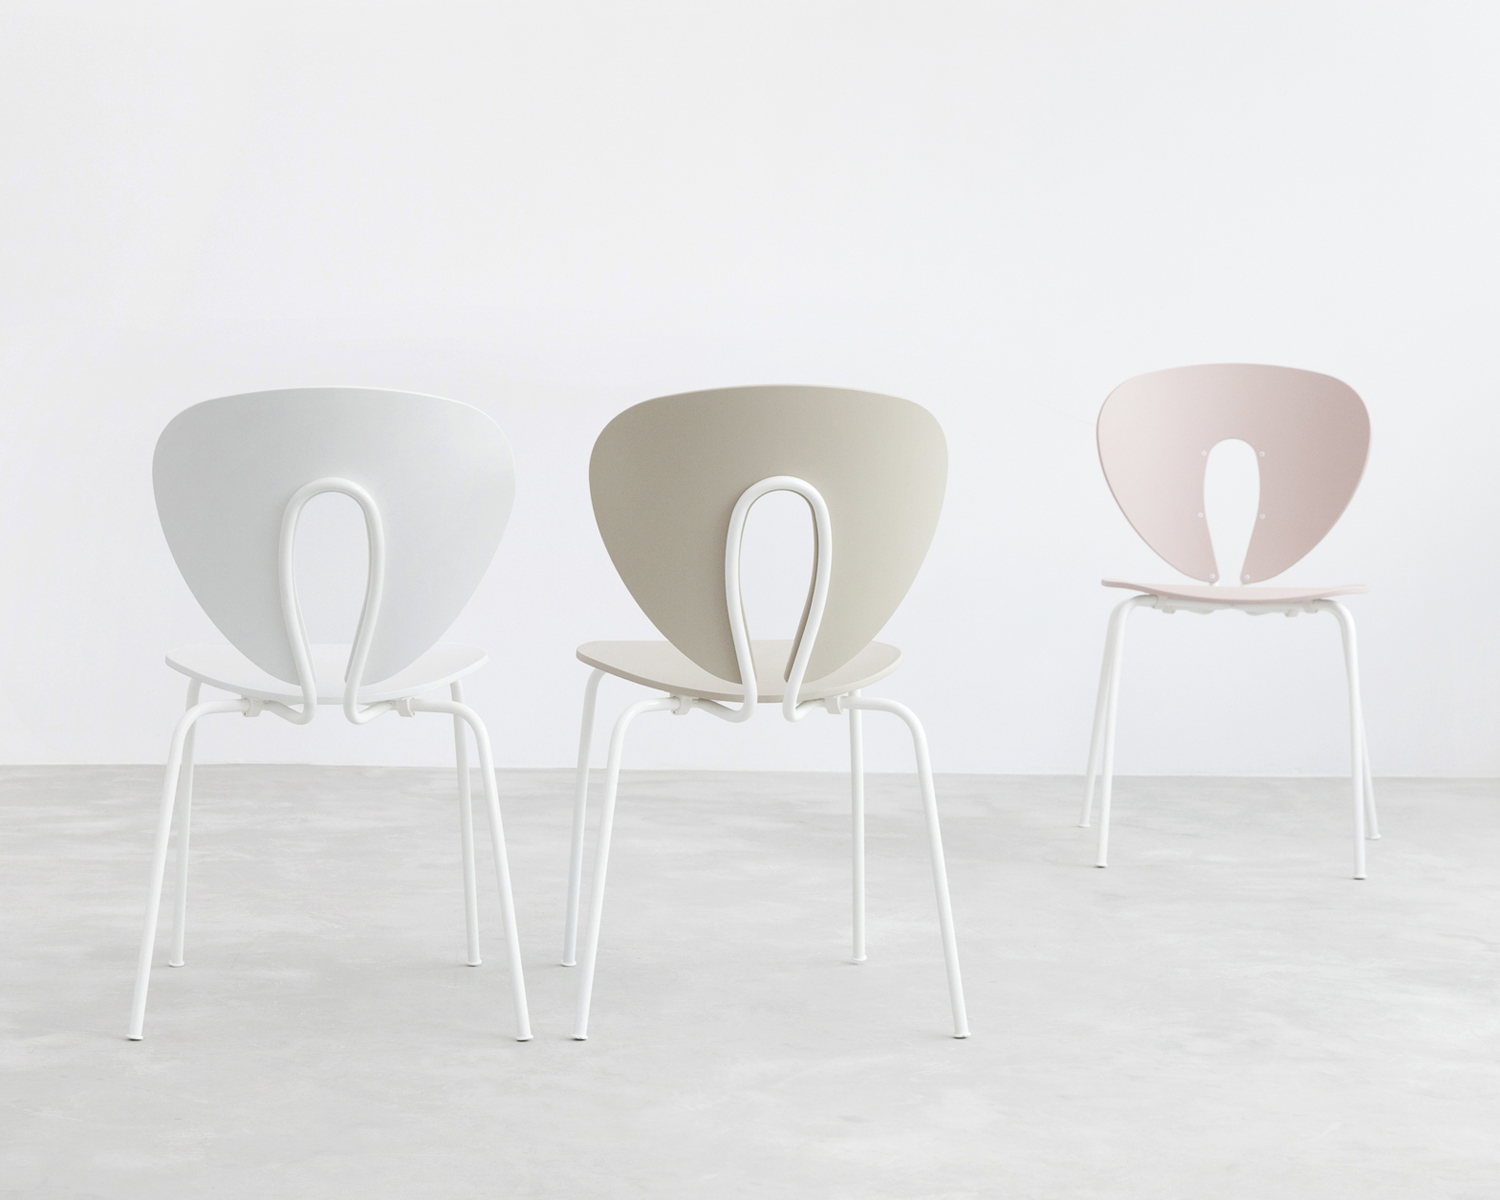 Stua globus chair polyprop with white frame